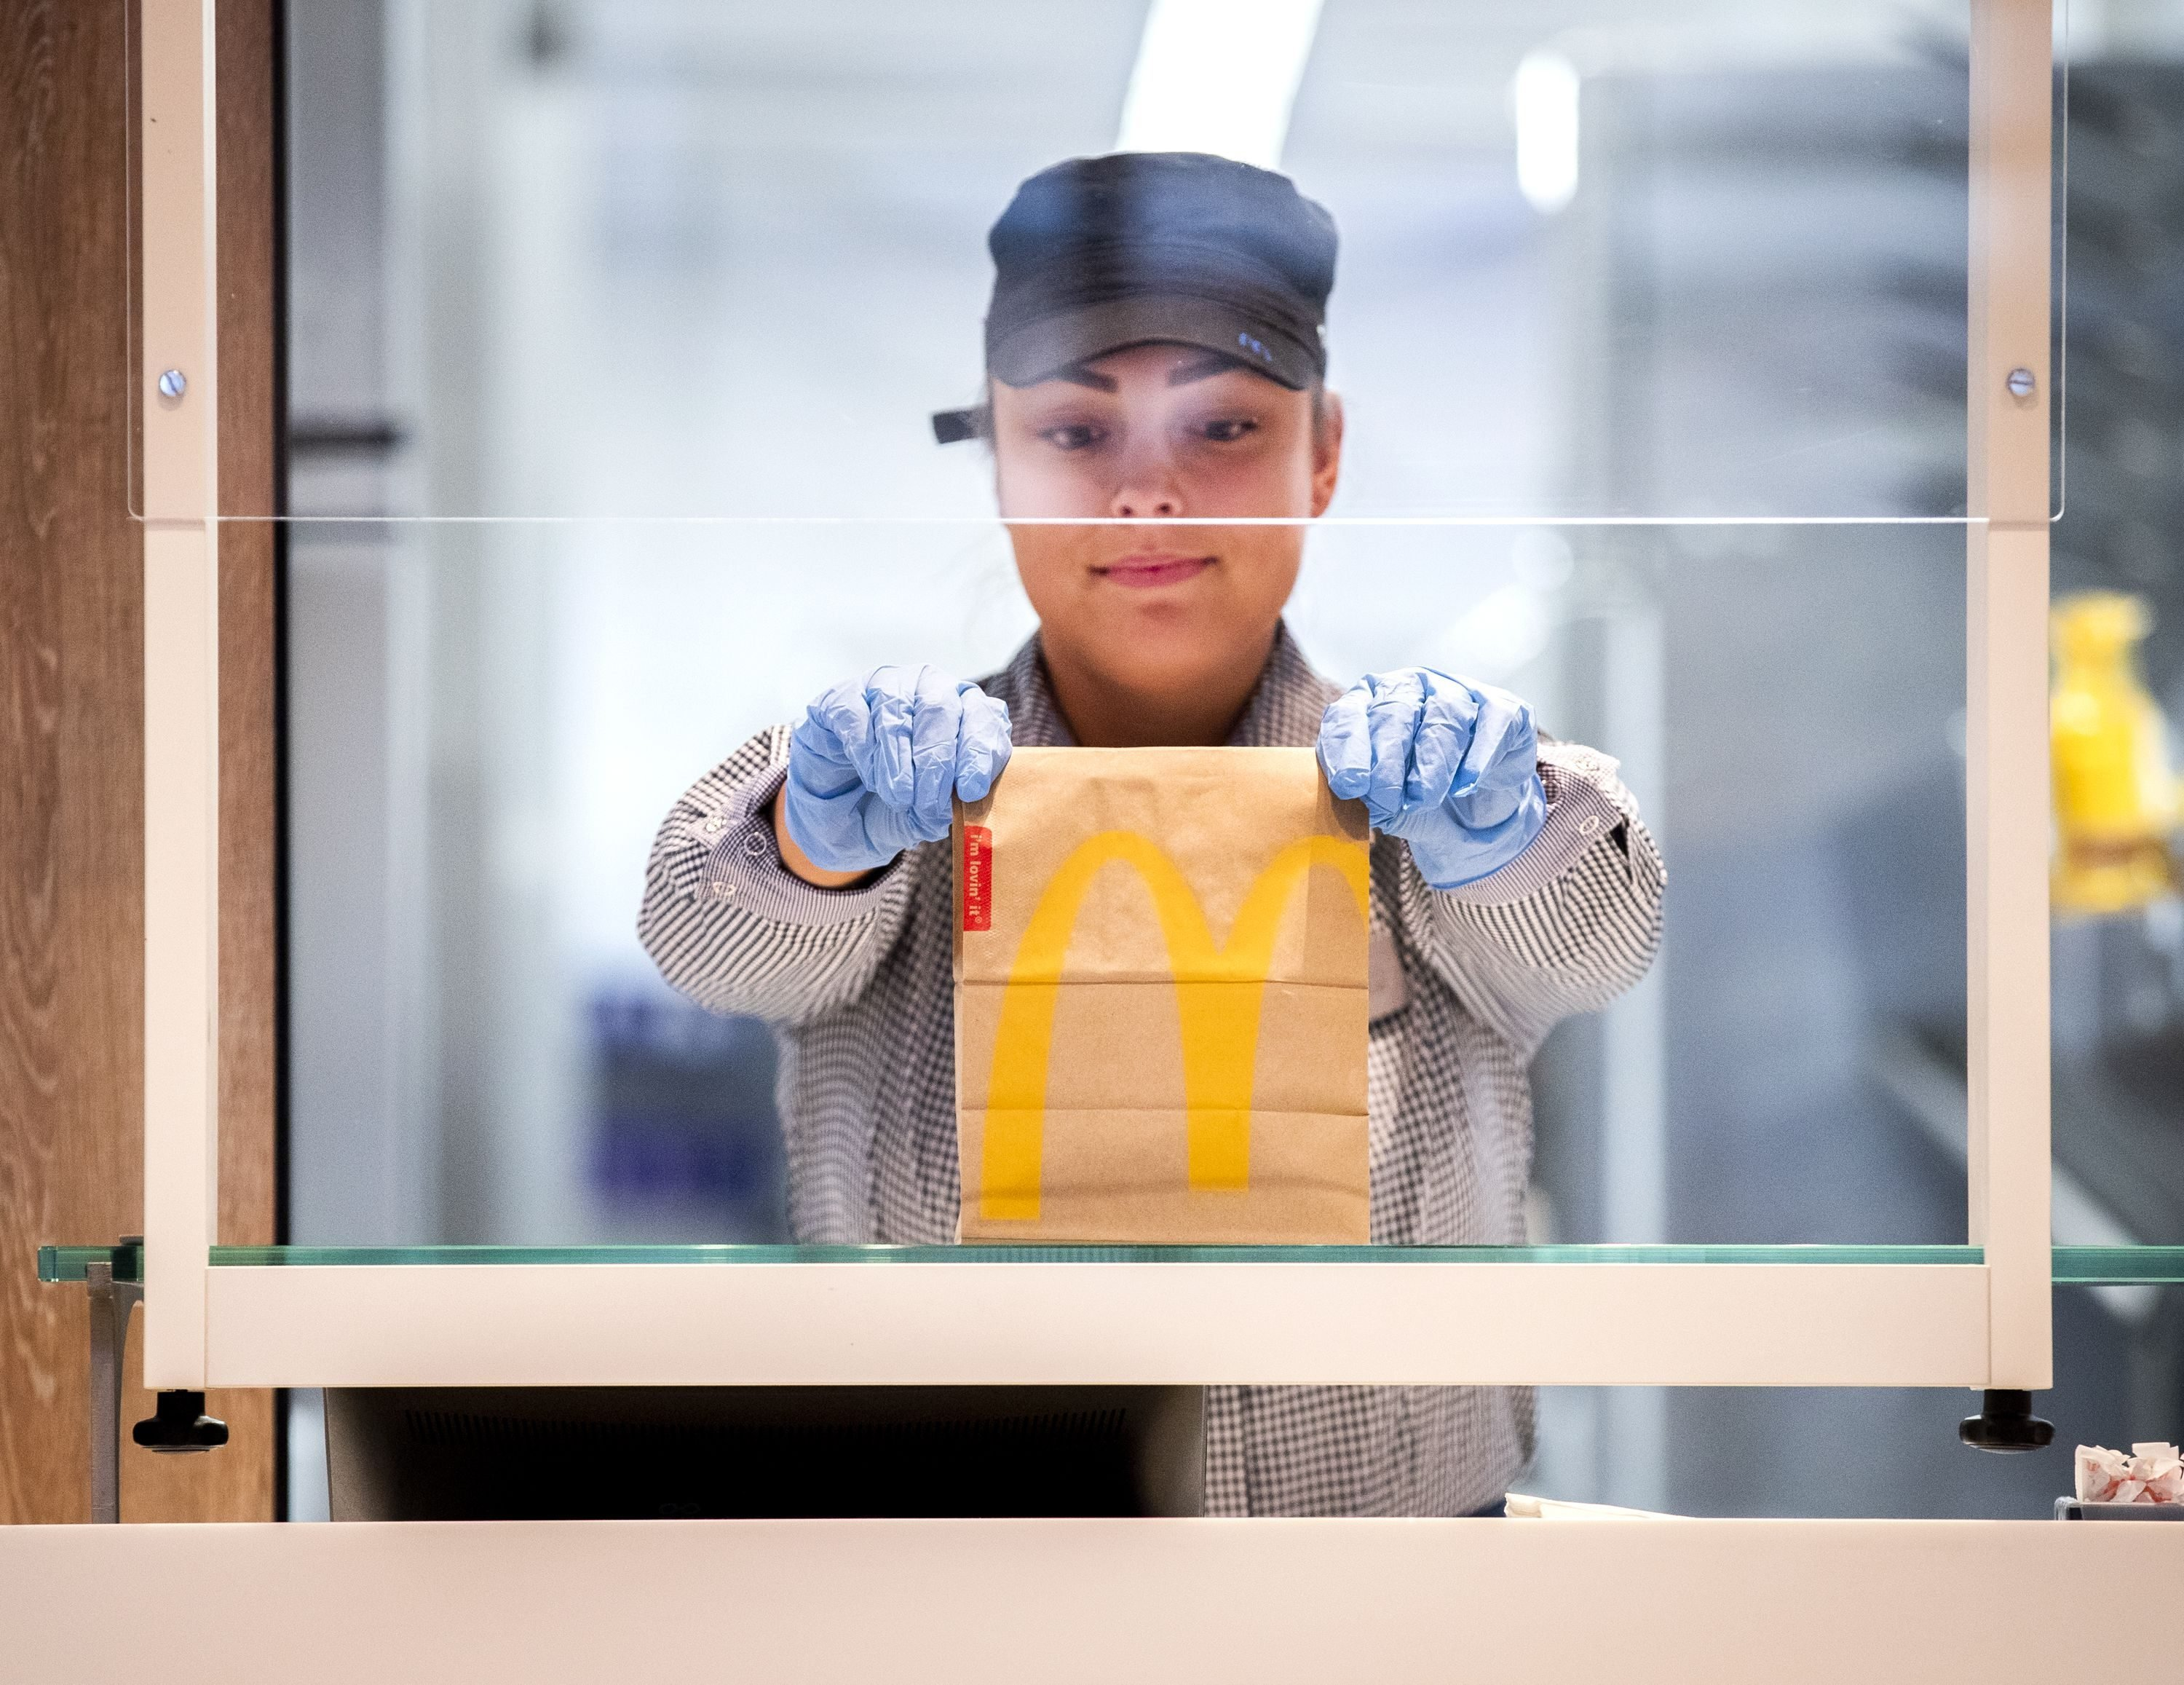 A McDonalds' employee holds up a food package at a test location in a restaurant at The GelreDome Arnhem, The Netherlands on May 1, 2020, as part of measures to attempt to stop the spread of COVID-19 (novel coronavirus). - In this restaurant prototype, the fast food chain shows what seated catering in the 1.5 meter economy could look like. There are two variants: Take Out Plus and Dine In. (Photo by Remko DE WAAL / ANP / AFP) / Netherlands OUT (Photo by REMKO DE WAAL/ANP/AFP via Getty Images)